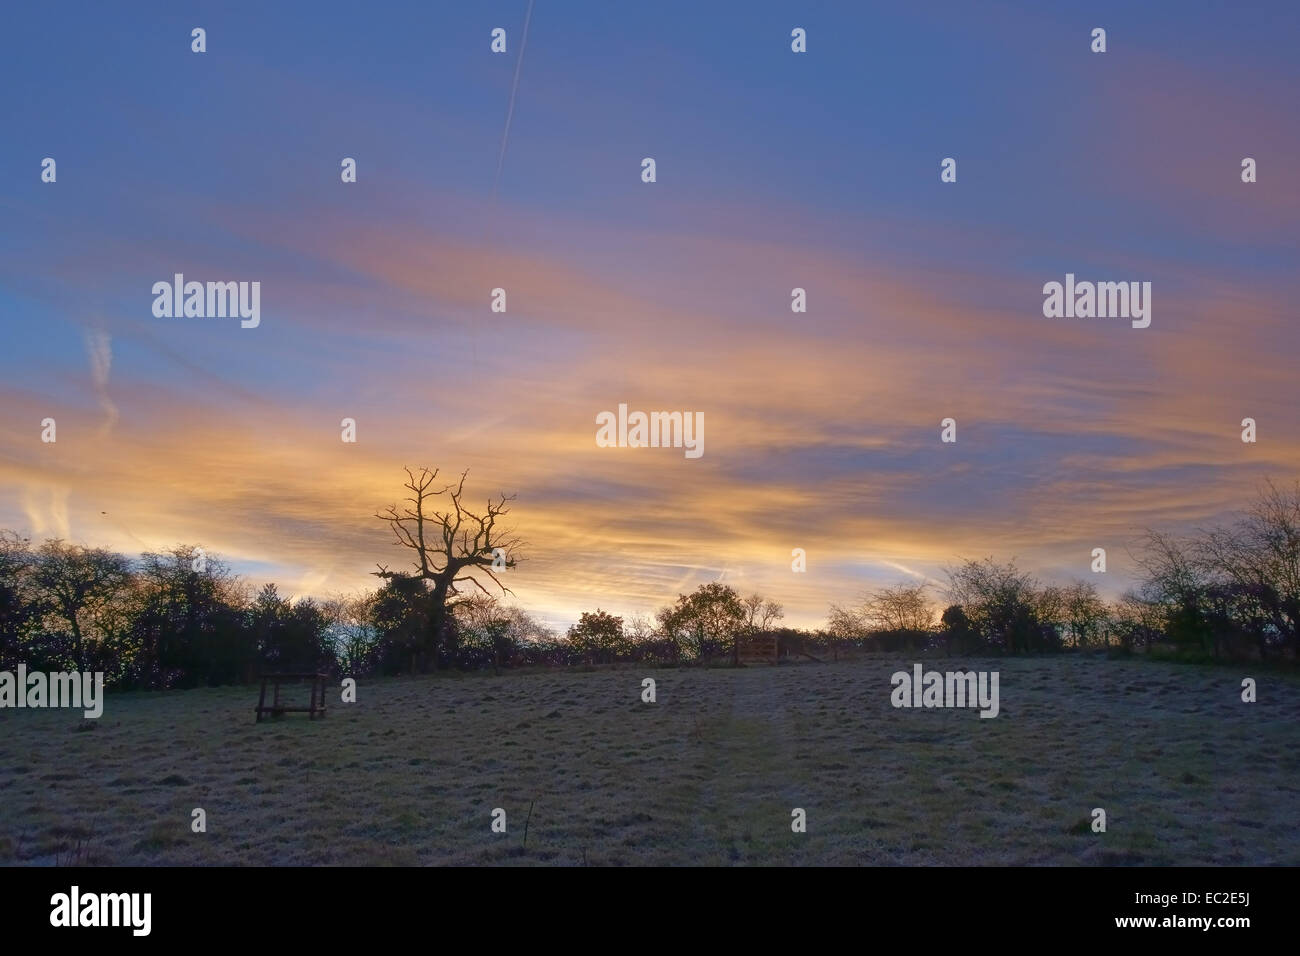 Winter sunrise on a frosty morning with bare hedegeline trees and a dead oak tree sinister silhouette set against - Stock Image